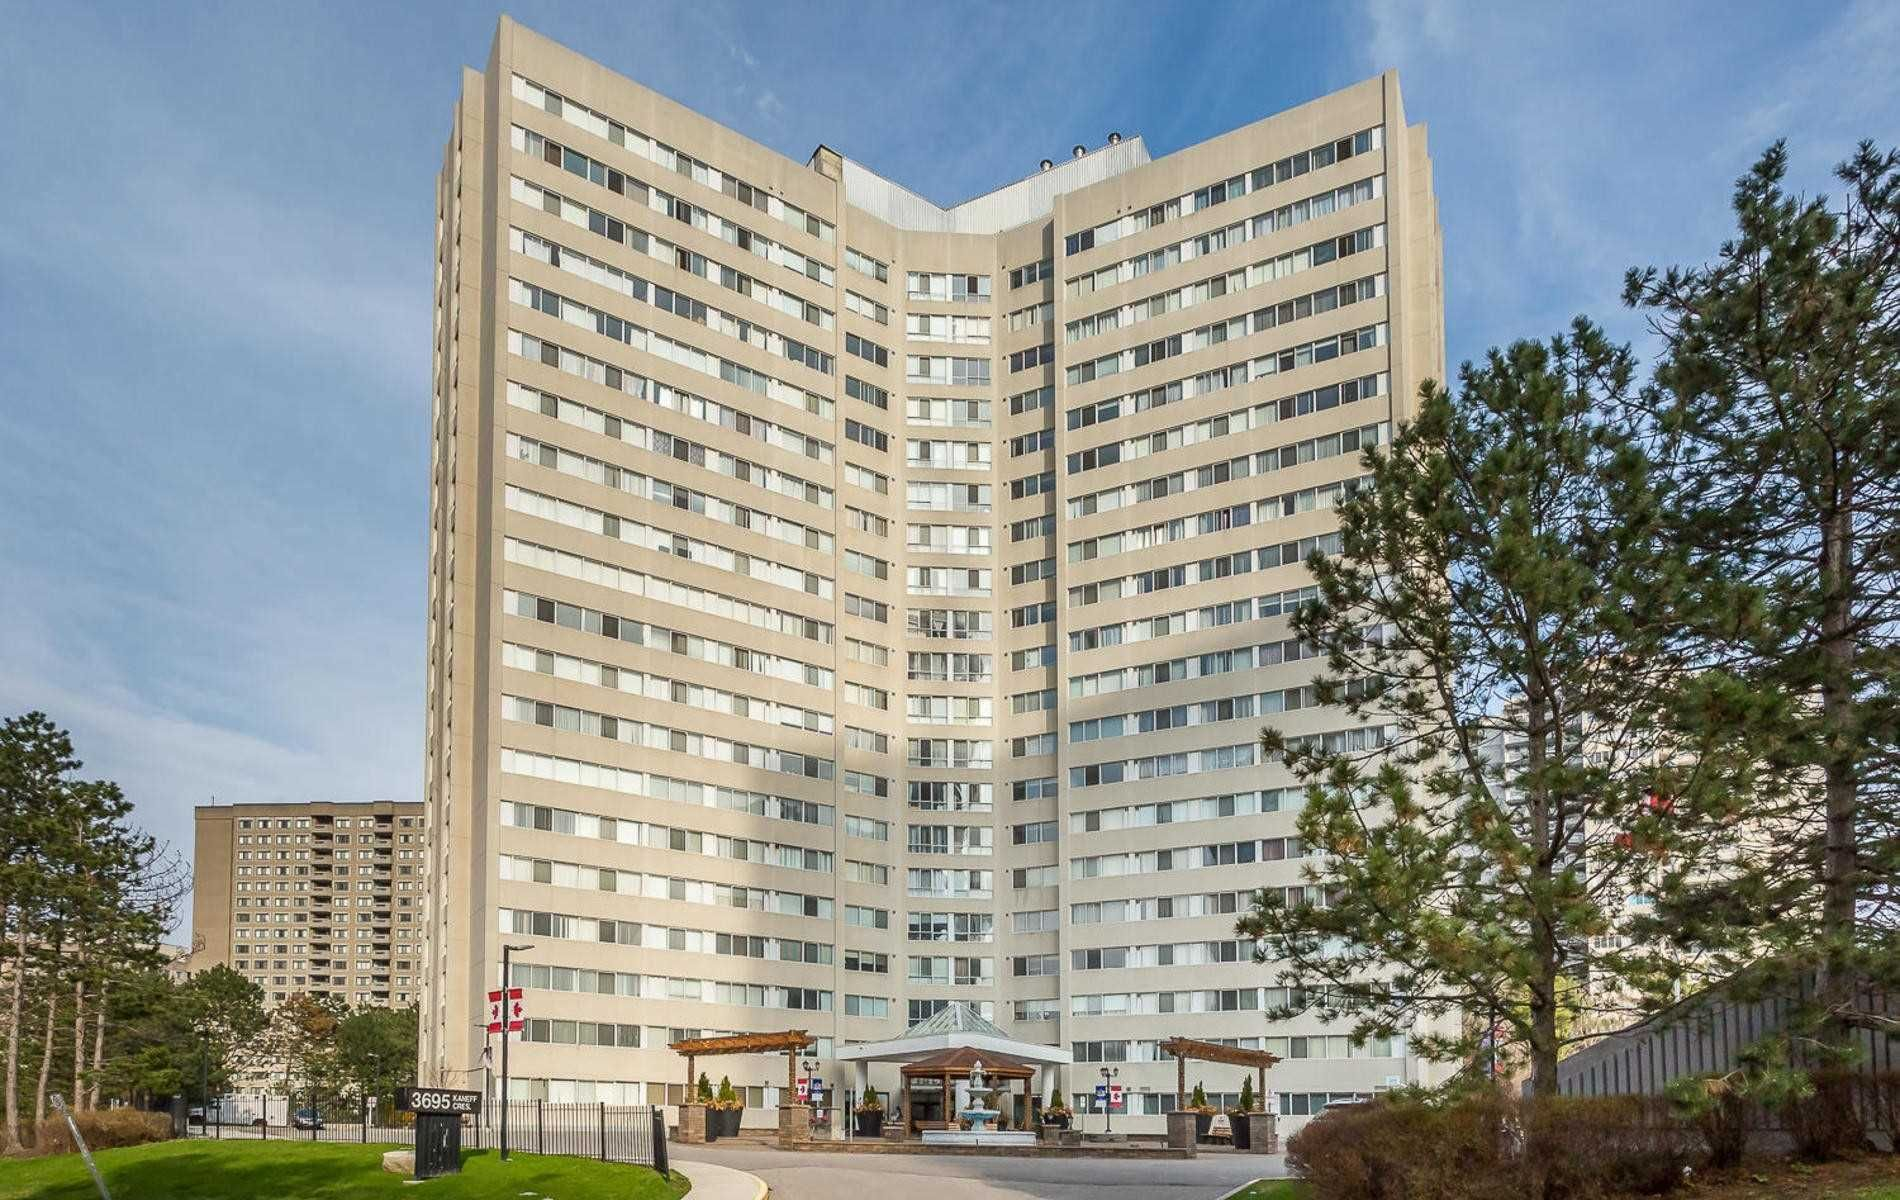 Place Royale Condo at 3695 Kaneff Crescent. This condo is located in Mississauga Valley, Mississauga